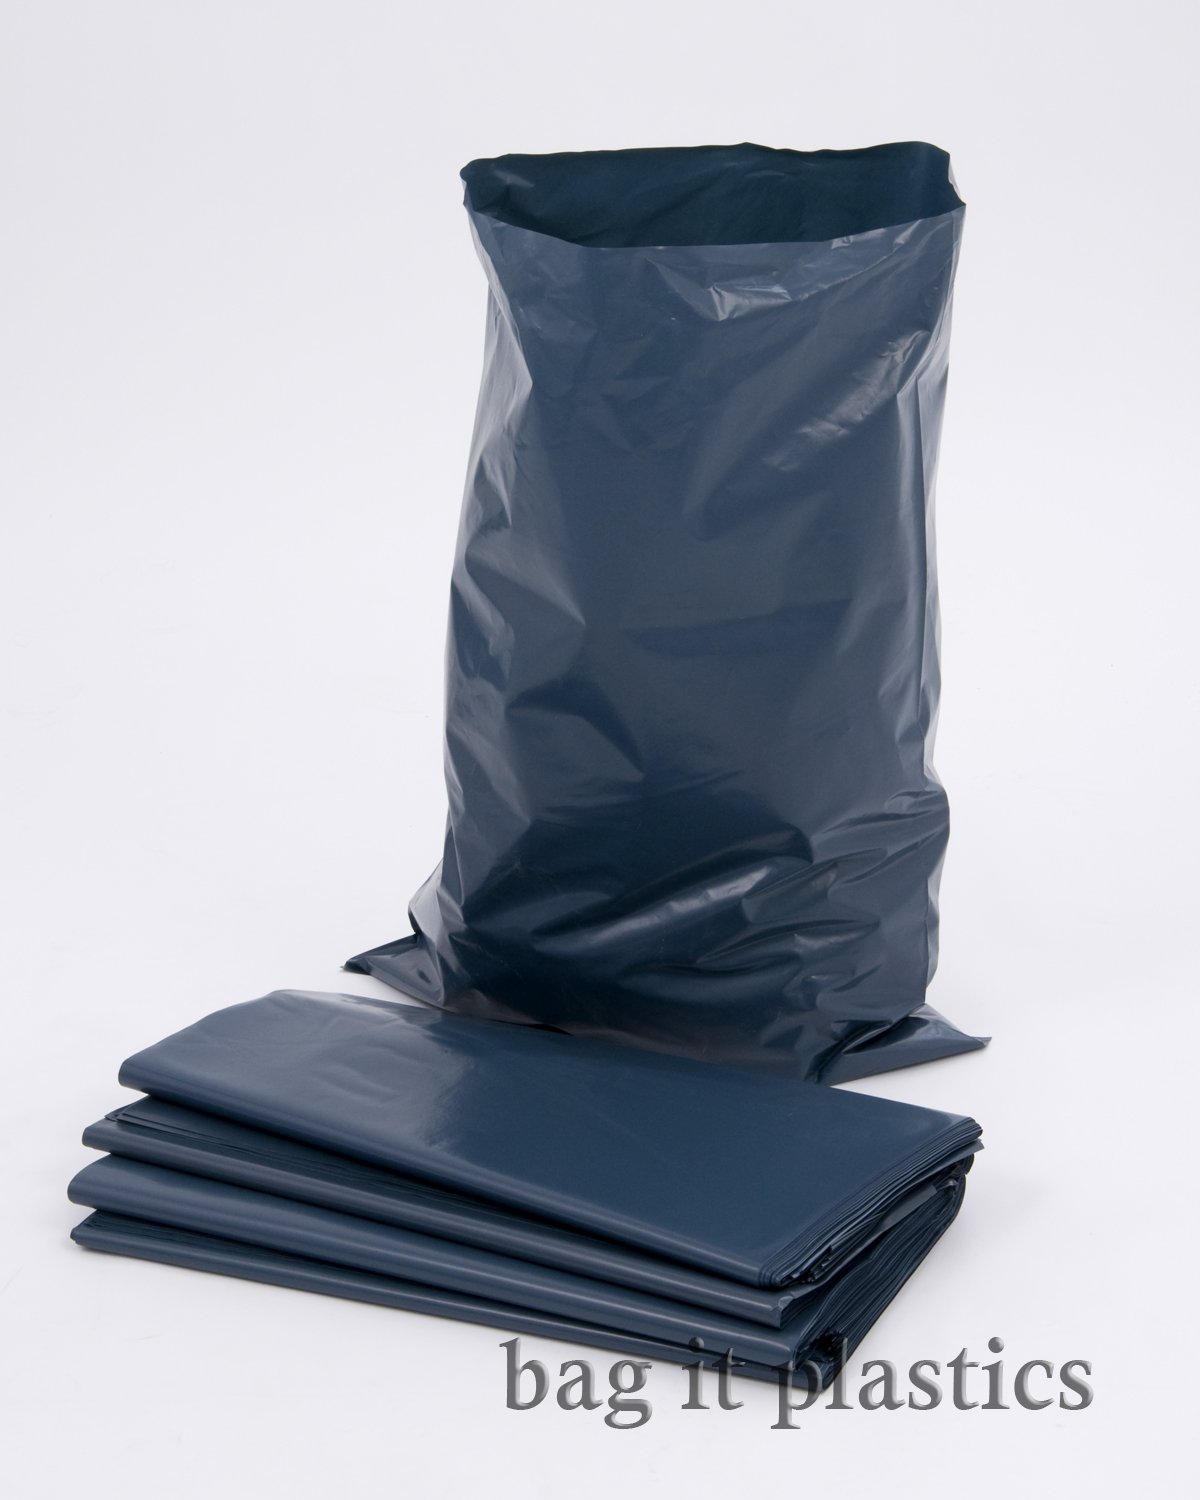 100 Blue Rubble Bags / Builders Sacks - 500 Gauge Bag It Plastics